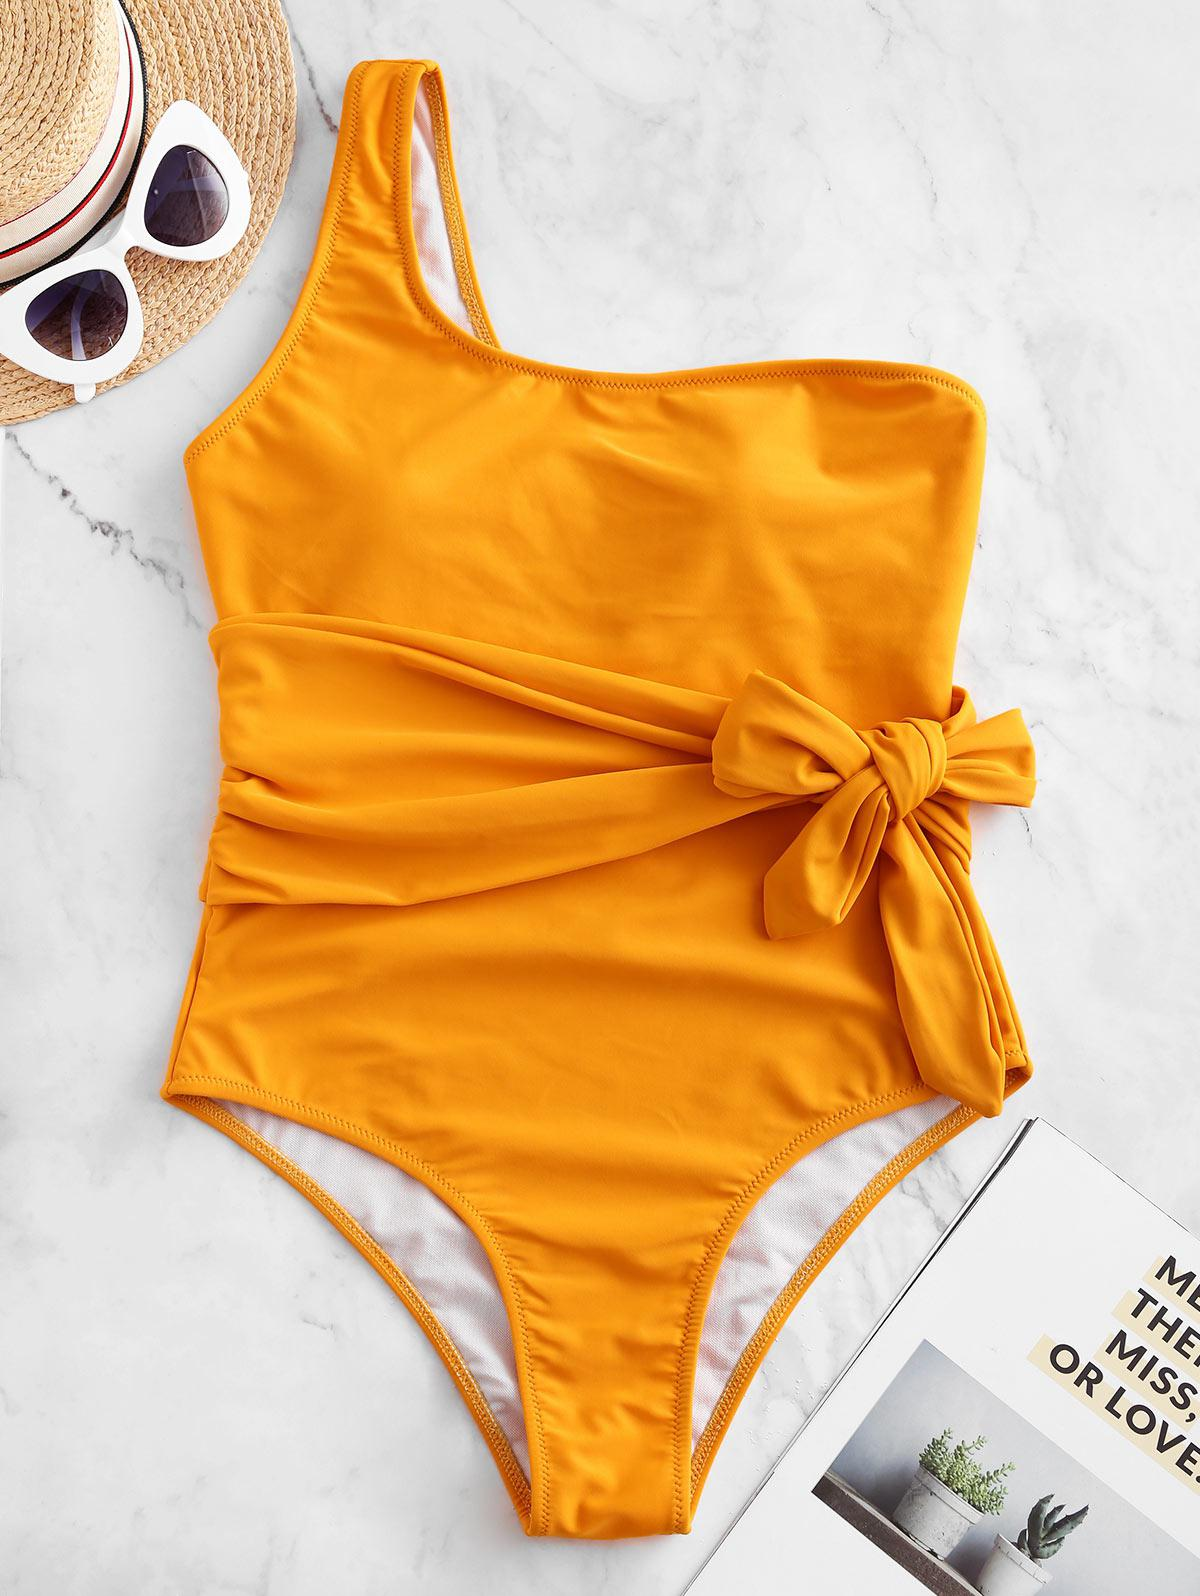 ZAFUL One Shoulder Belted One-piece Swimsuit фото